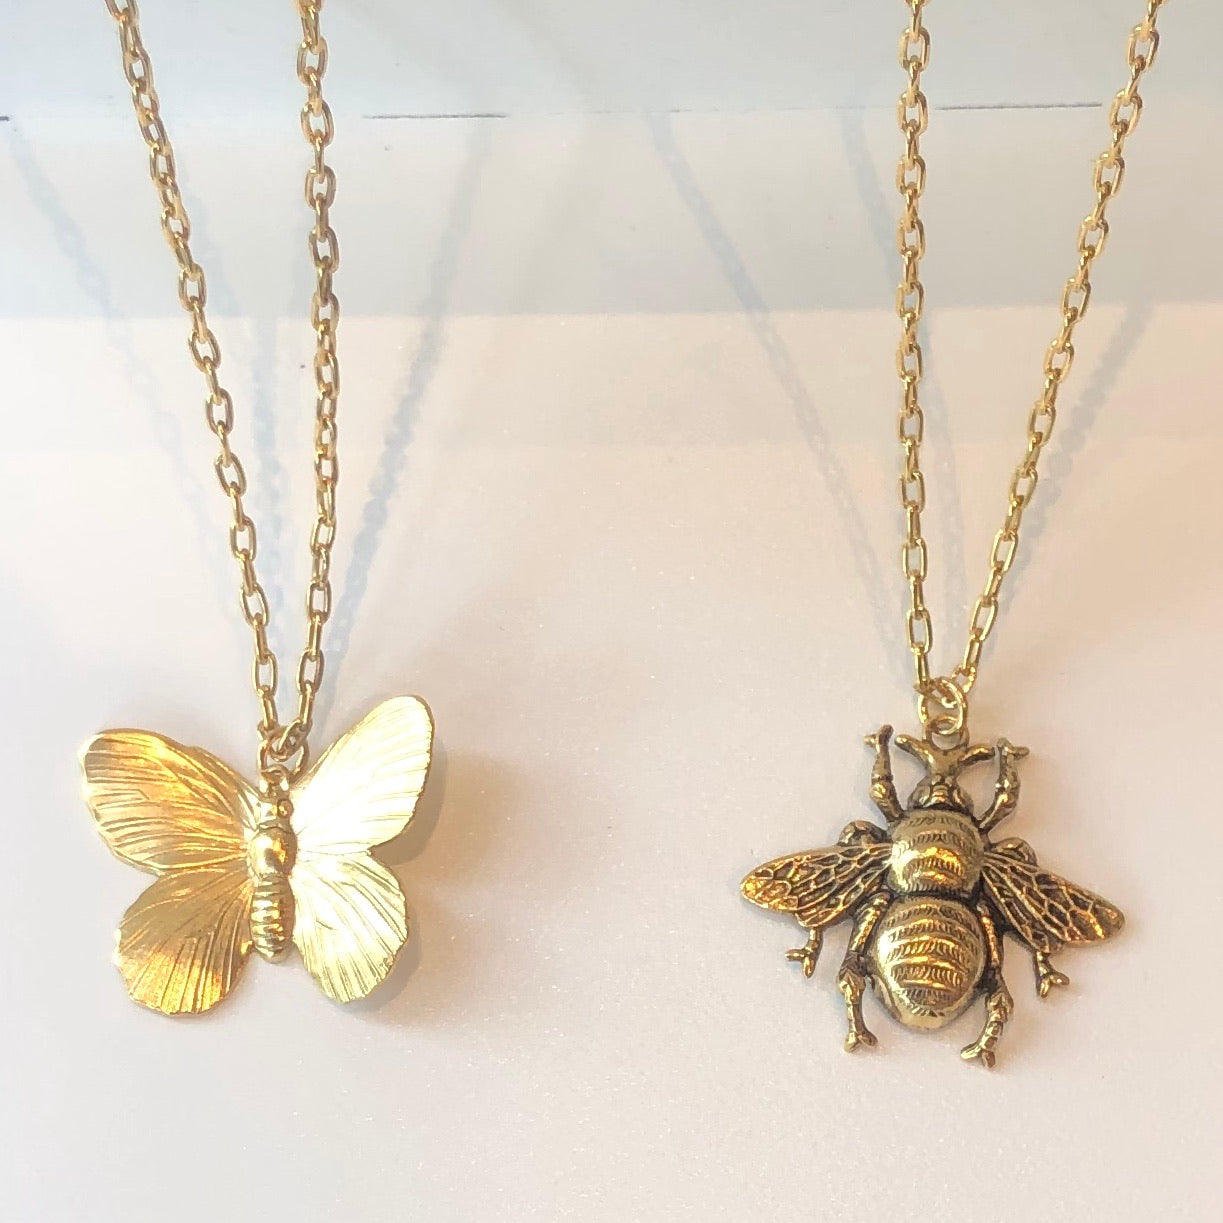 Adjustable Bee/Butterfly Necklace